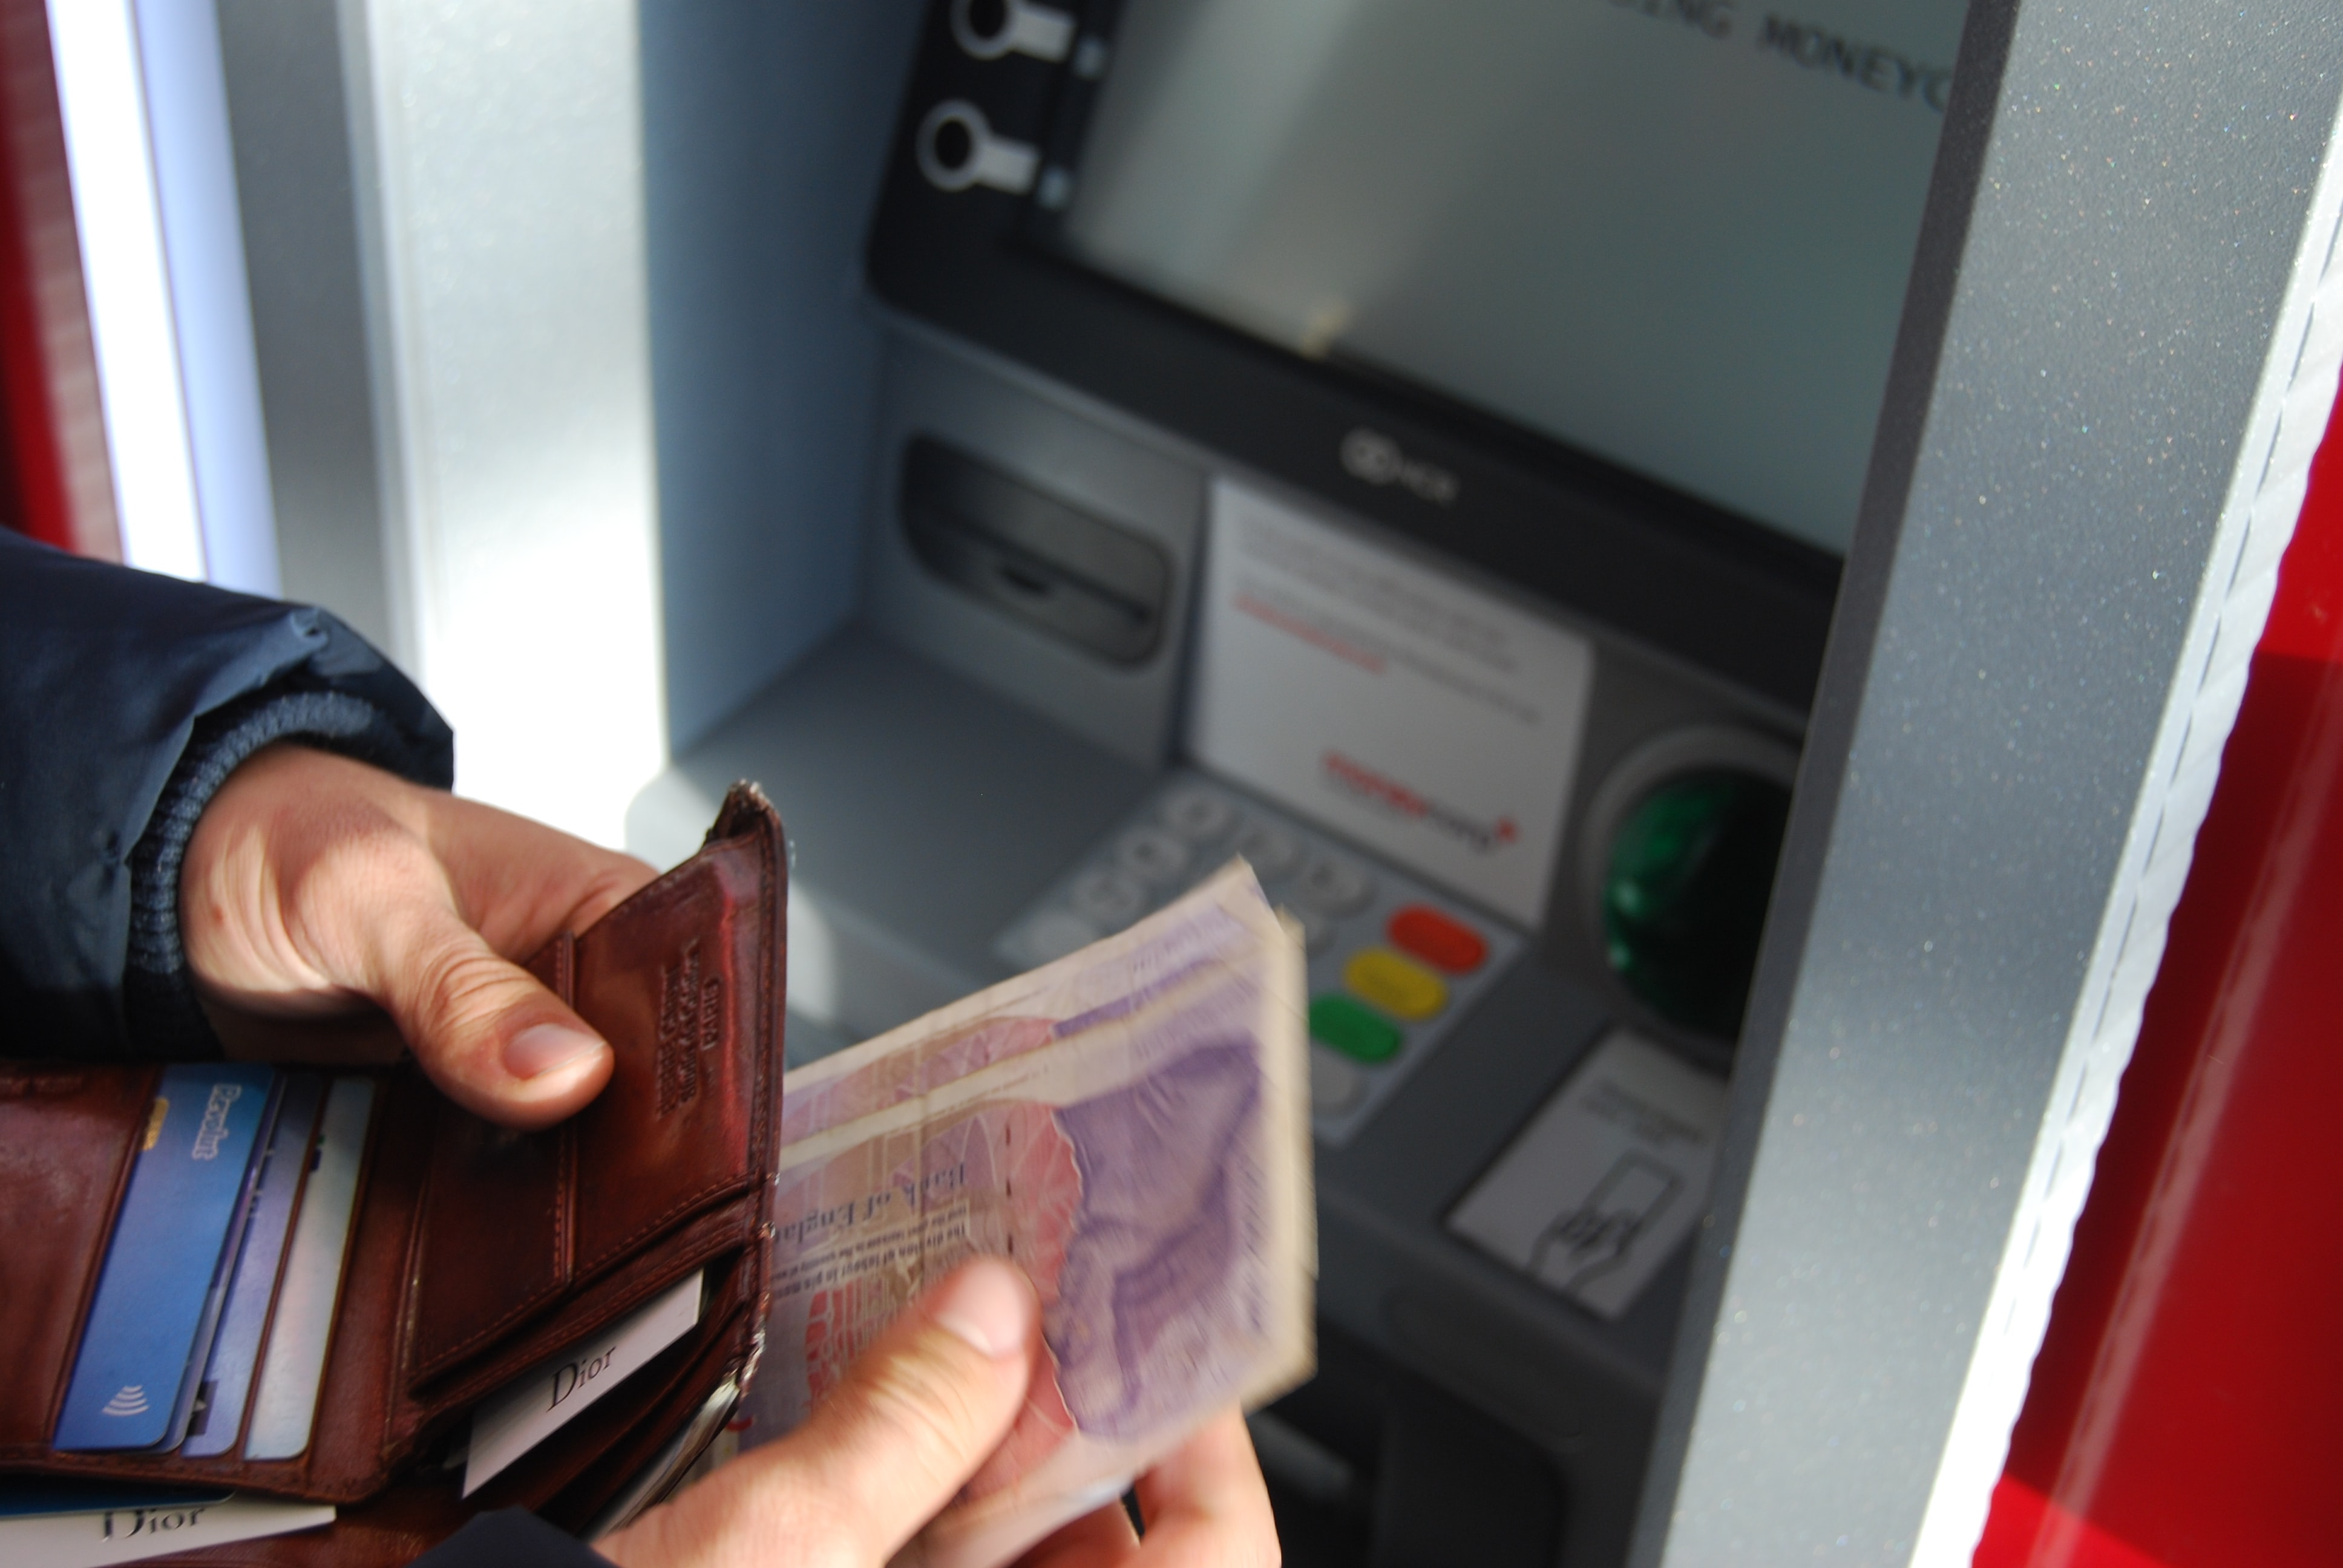 I Am Absolutely Against Using Atms To